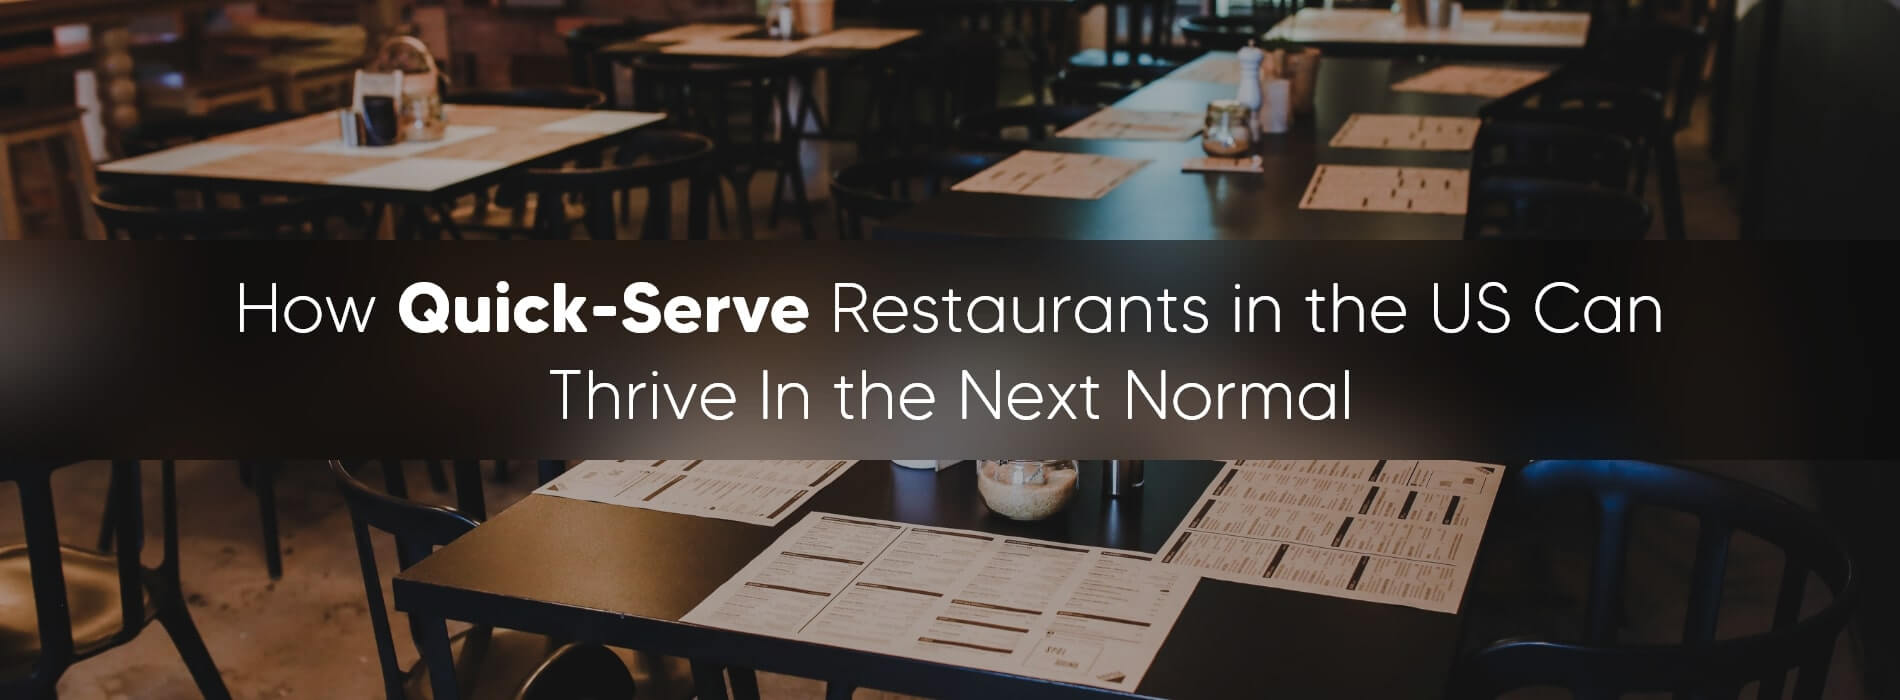 How Quick-Serve Restaurants in the US Can Thrive In the Next Normal